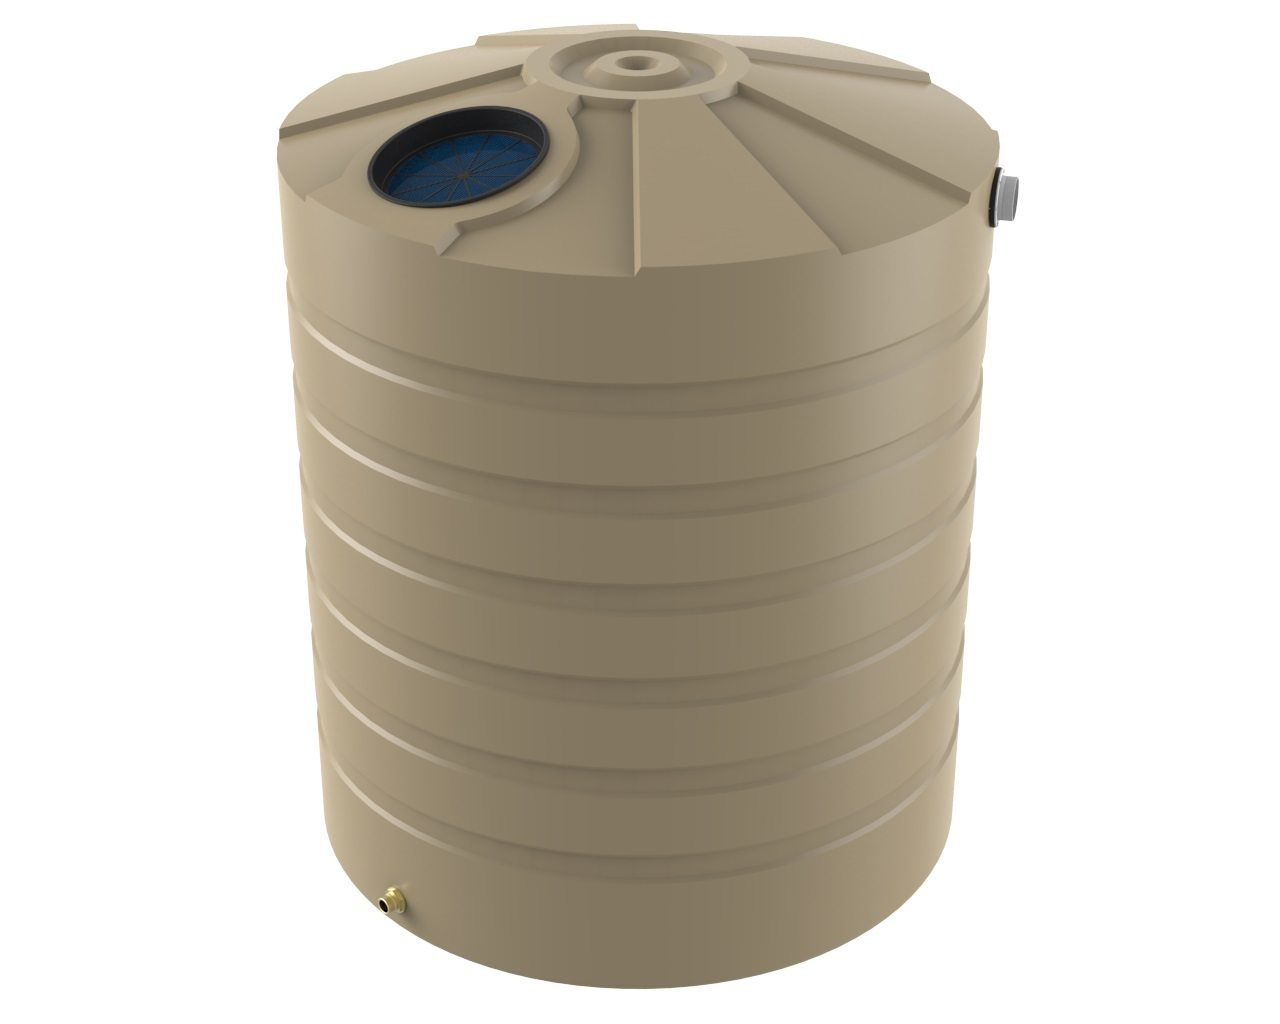 3250 Litre Tall Rainwater Tank - Water Tanks - Bushman Tanks